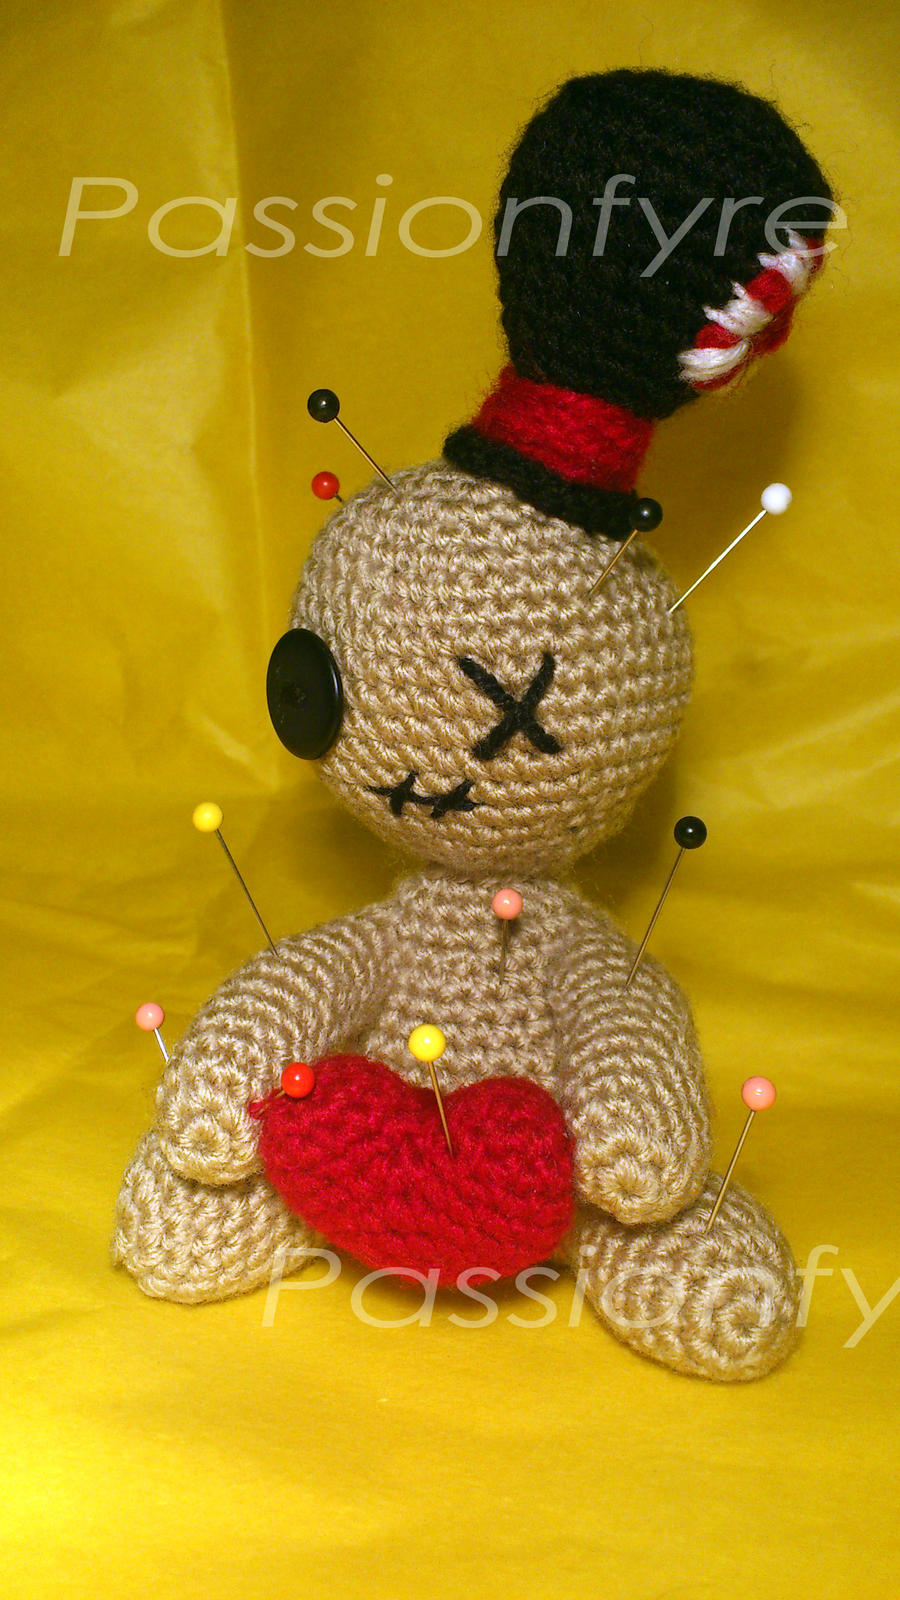 FULL PATTERN: Creepy Cute Voodoo Doll crochet pattern with Cat and ... | 1600x900